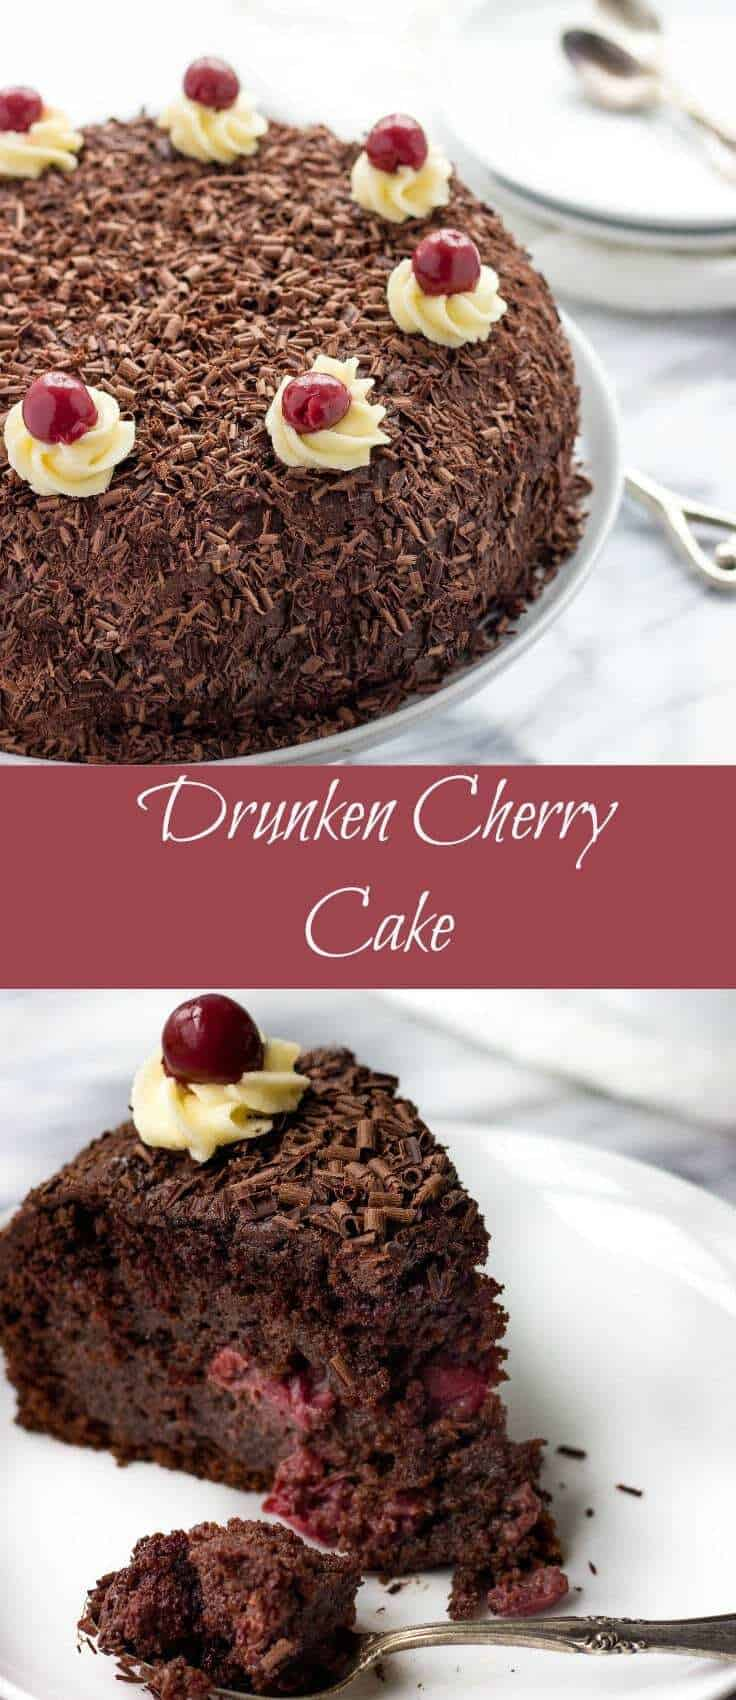 Drunken Cherry Cake is moist, drenched in a decadent mixture of Dulce De Leche, cherries and rum. This Cherry Dulce De Leche Cake is out of this world delicious. You've got to try it!